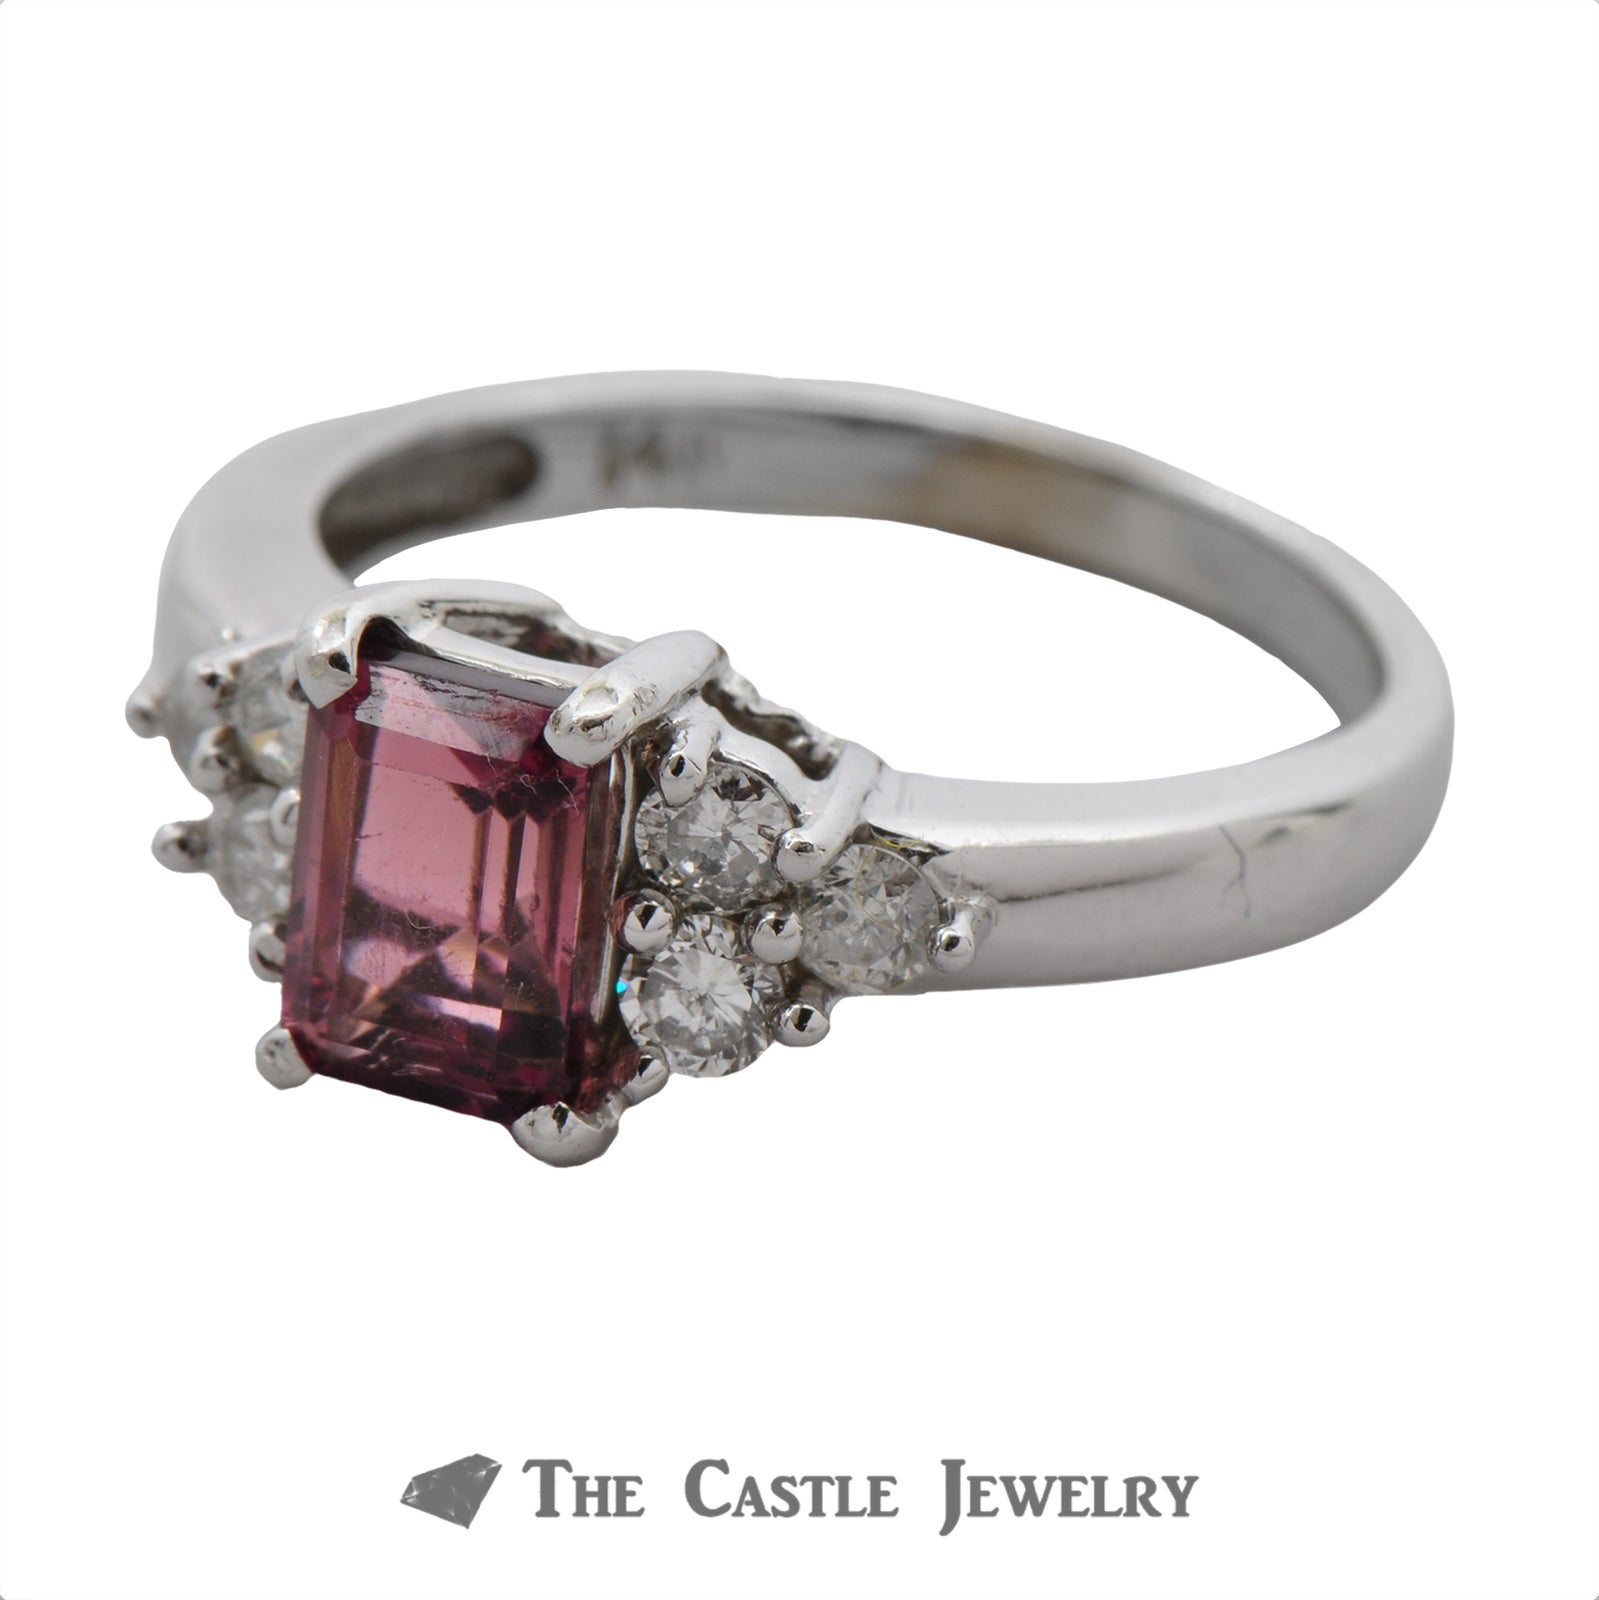 Emerald Cut Pink Rhodolite Garnet Ring with Diamond Accents-2